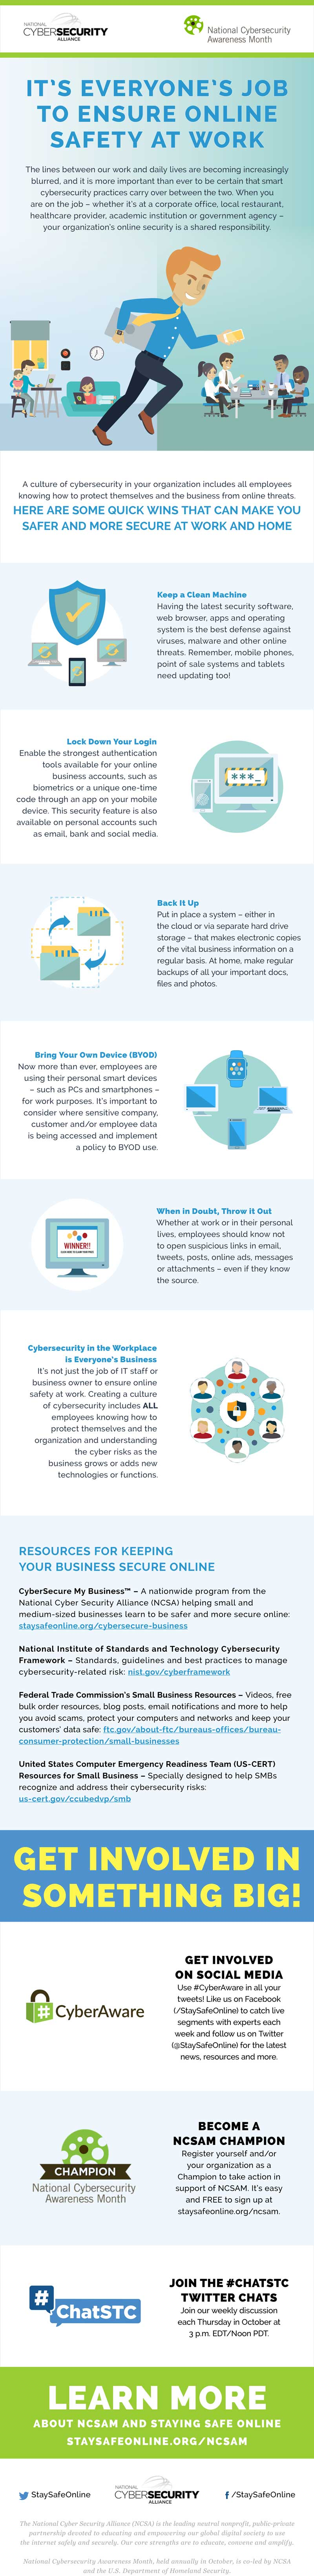 Cyber Safety in the Office infographic